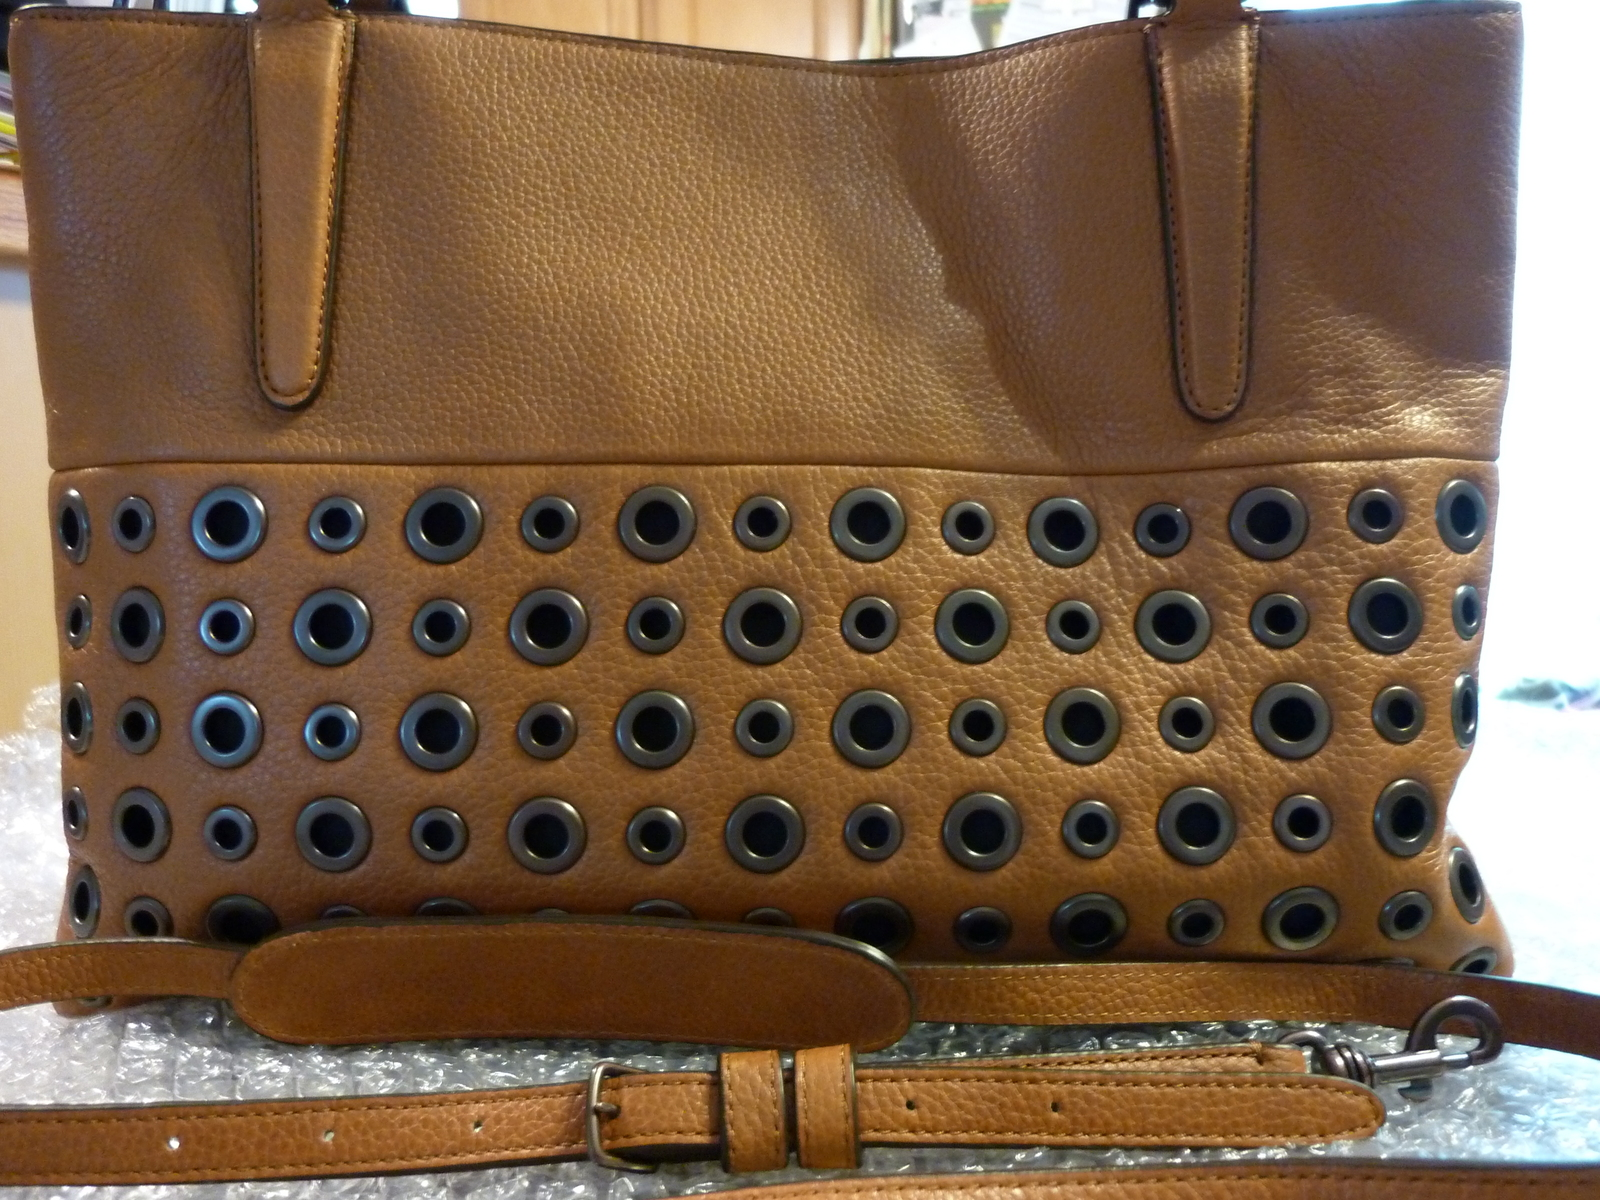 119dfcadb662 P1160890. P1160890. Previous. NWT COACH GROMMETS SOFT BOROUGH BAG IN PEBBLED  LEATHER TAN STYLE 32339